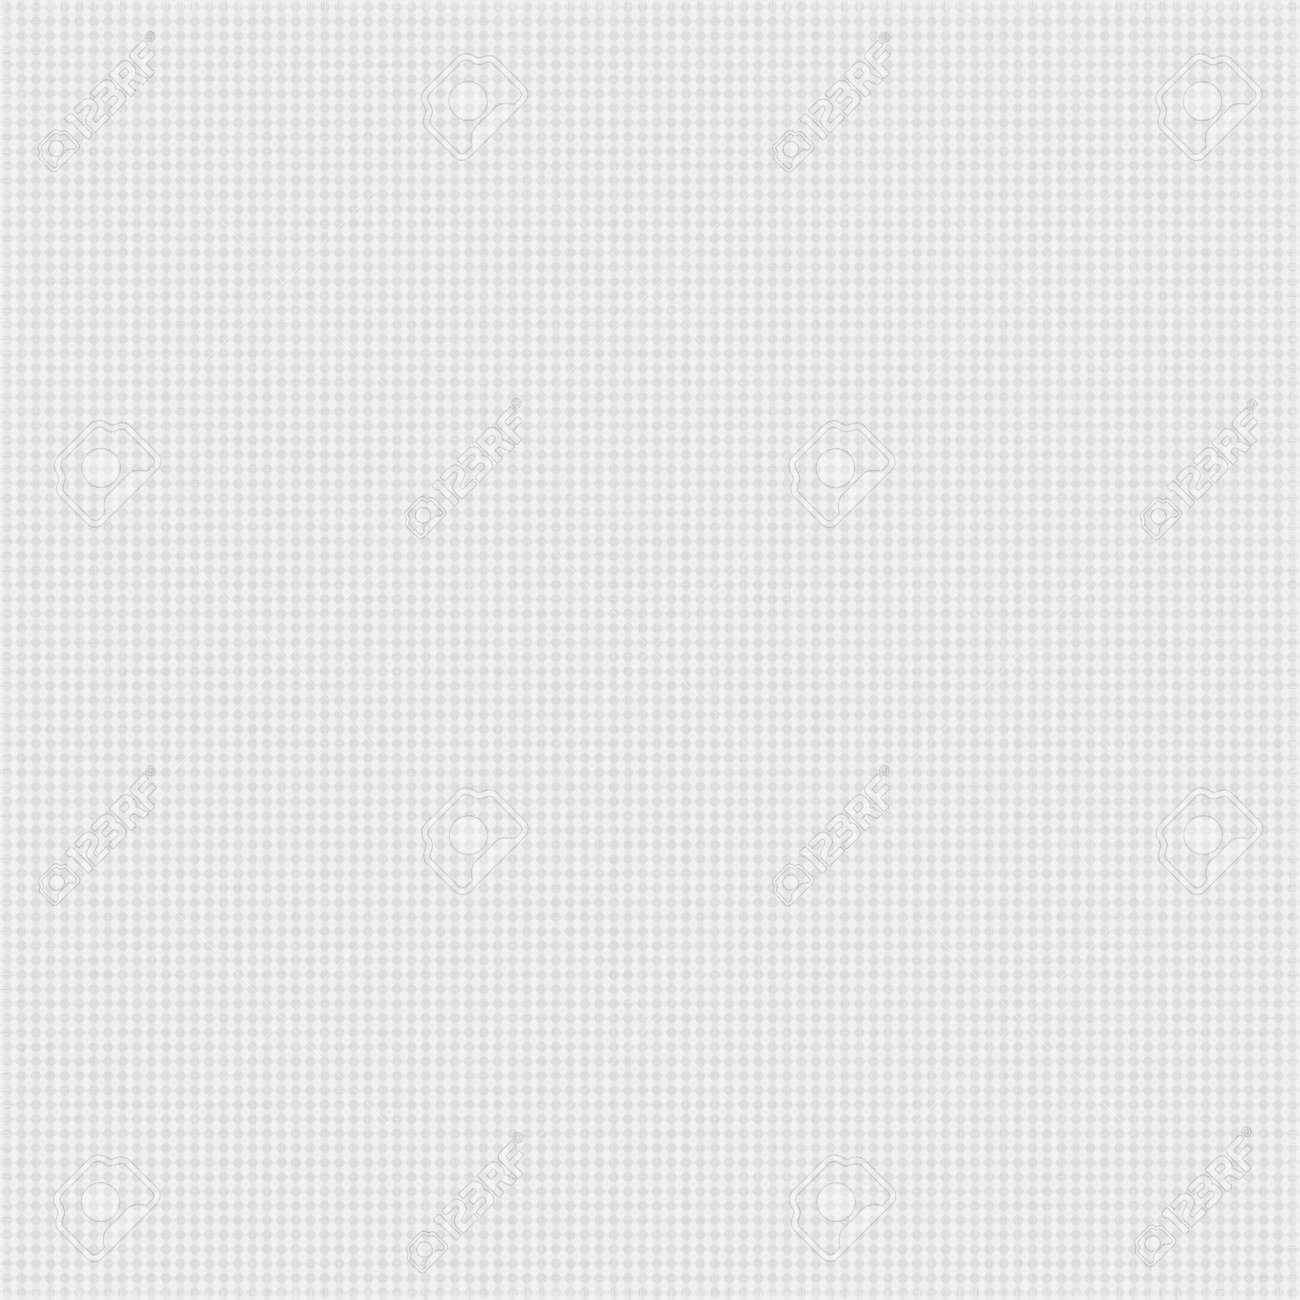 Gray Canvas With Delicate Seamless Pattern To Use As Background Or Texture  Stock Photo   14585638 Idea